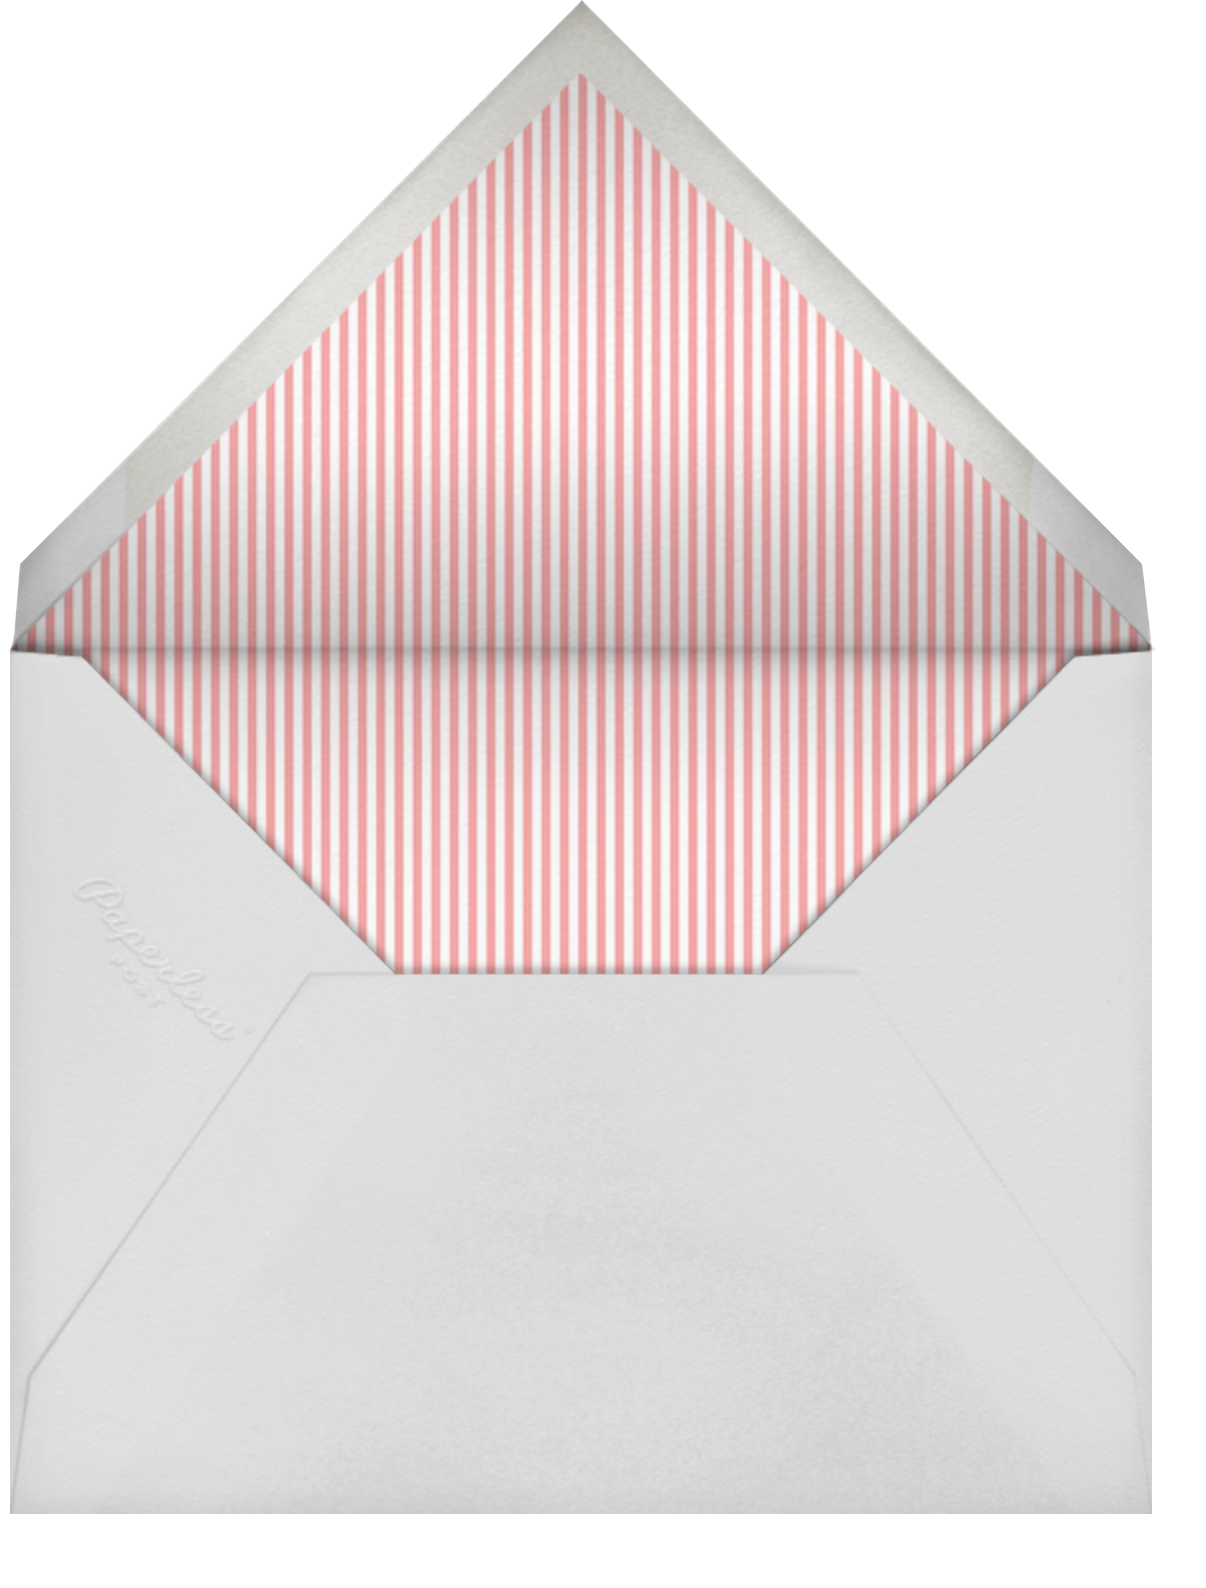 Toy Parade (Tall) - Little Cube - Baby shower - envelope back